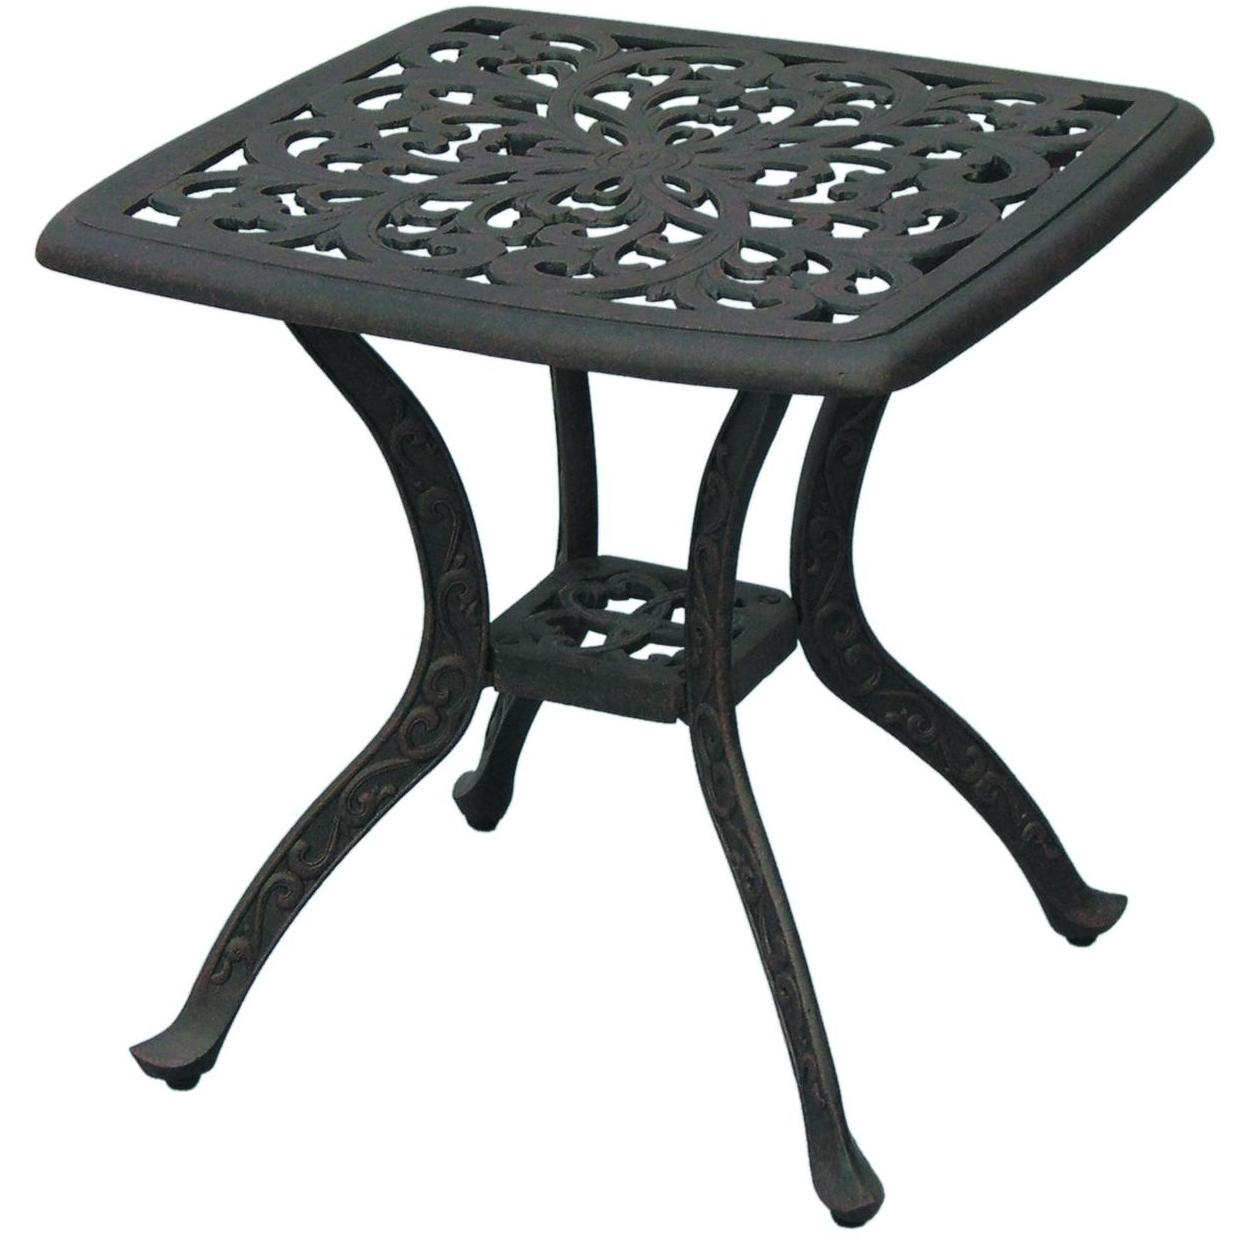 probably fantastic real aluminum patio end table jockboymusic darlee series cast square ultimate ikea kids chair target accent furniture modern style coffee tufted bench tile that